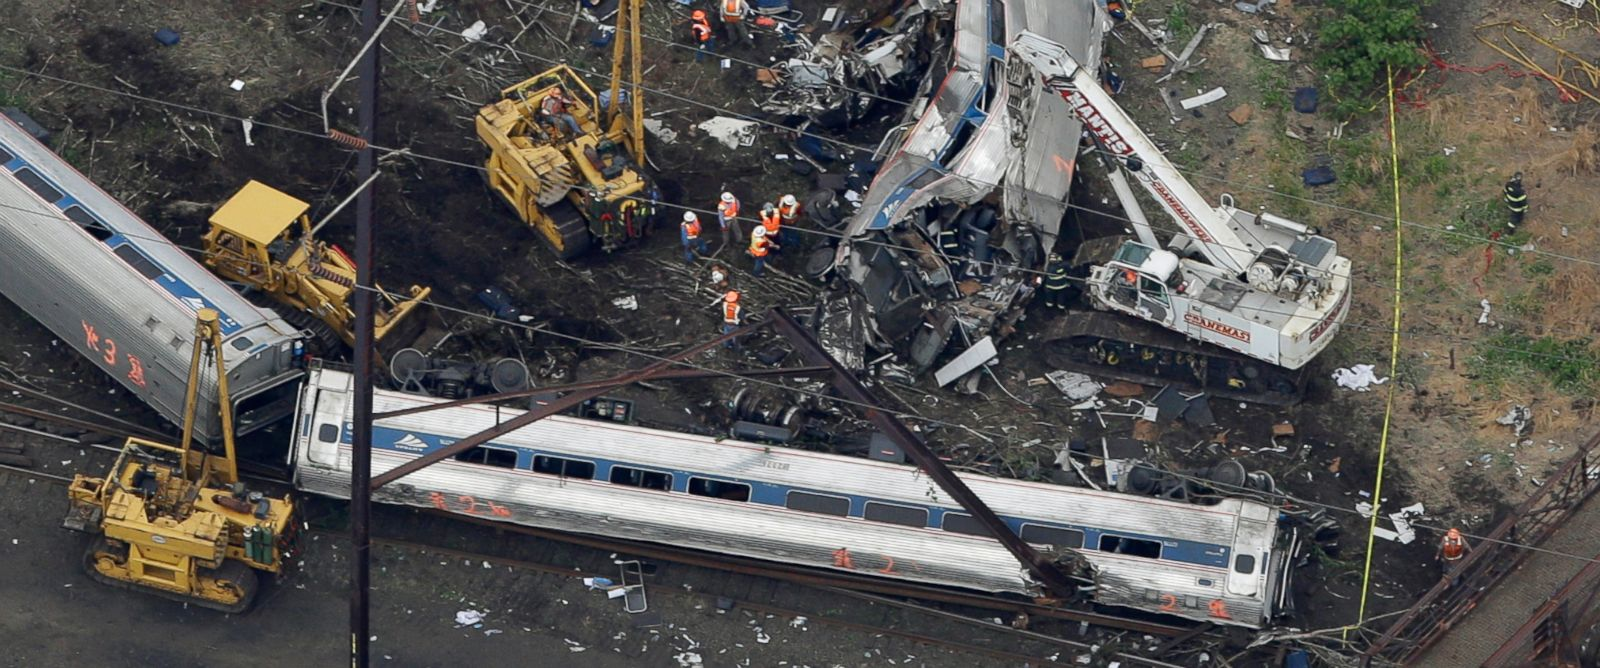 Amtrak 188 Engineer Distracted Before Deadly Derailment